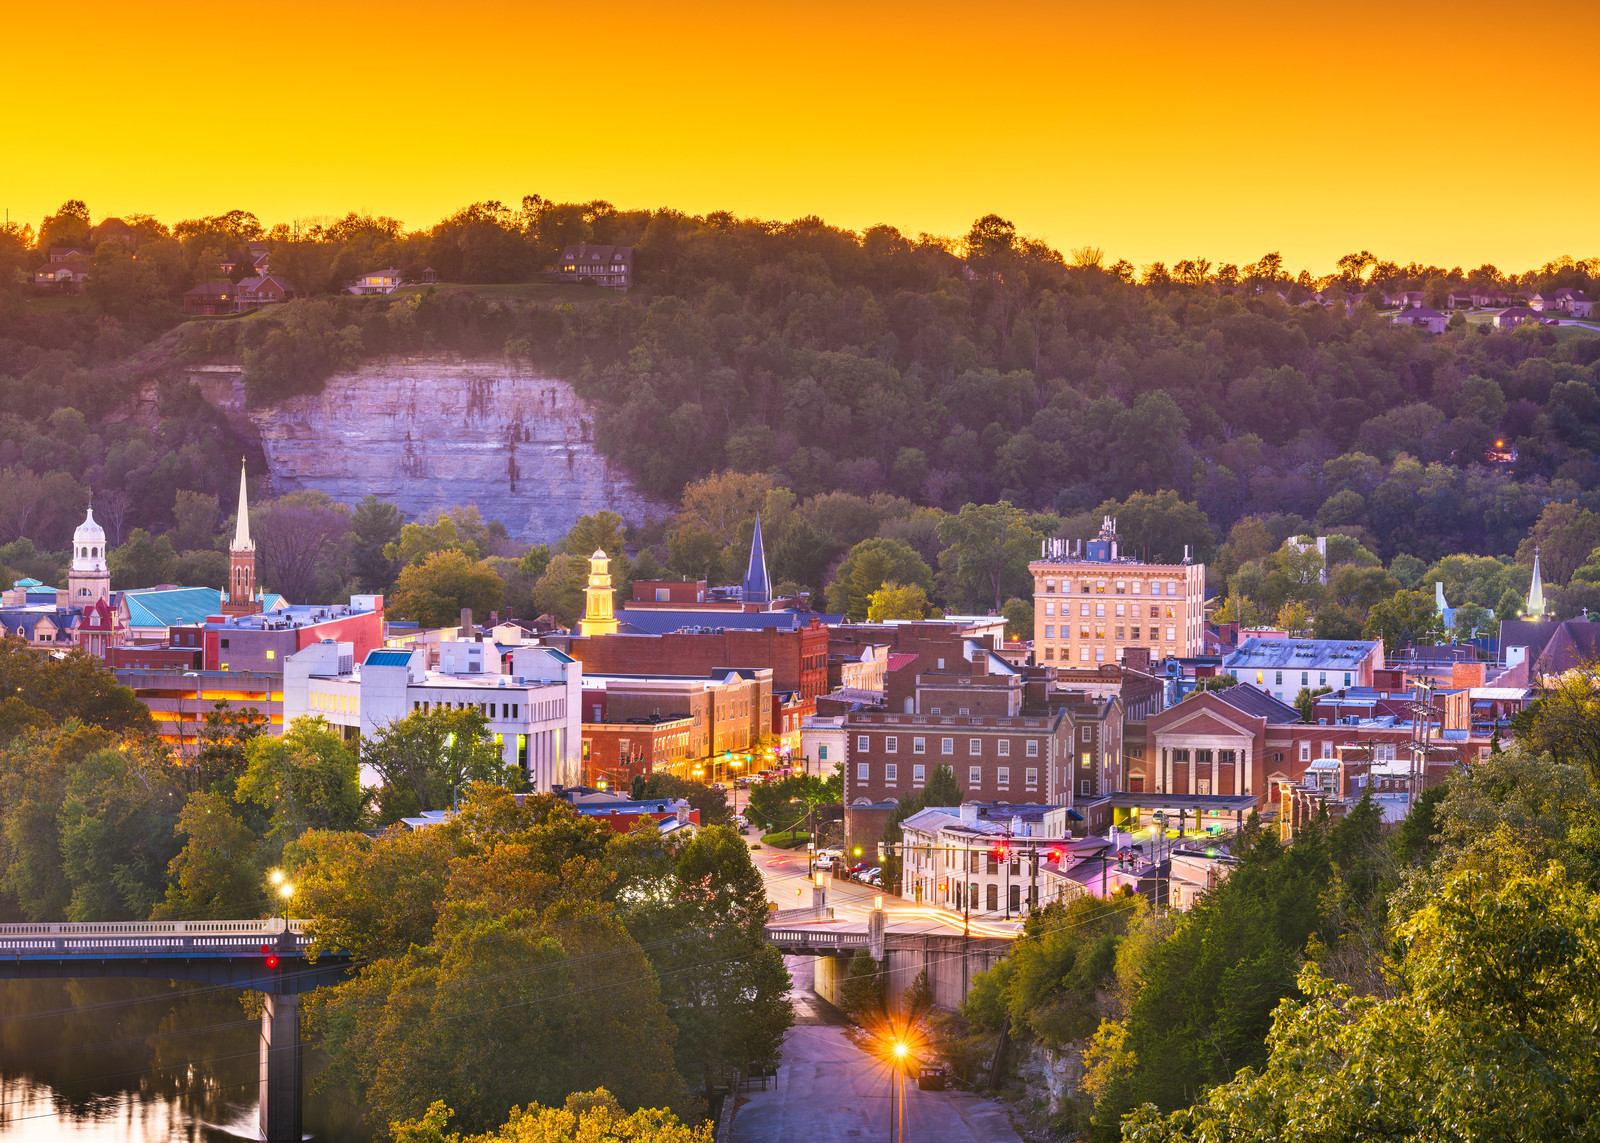 View of Frankfort Kentucky along the Kentucky river from above at sunset, with the sky shades of yellow